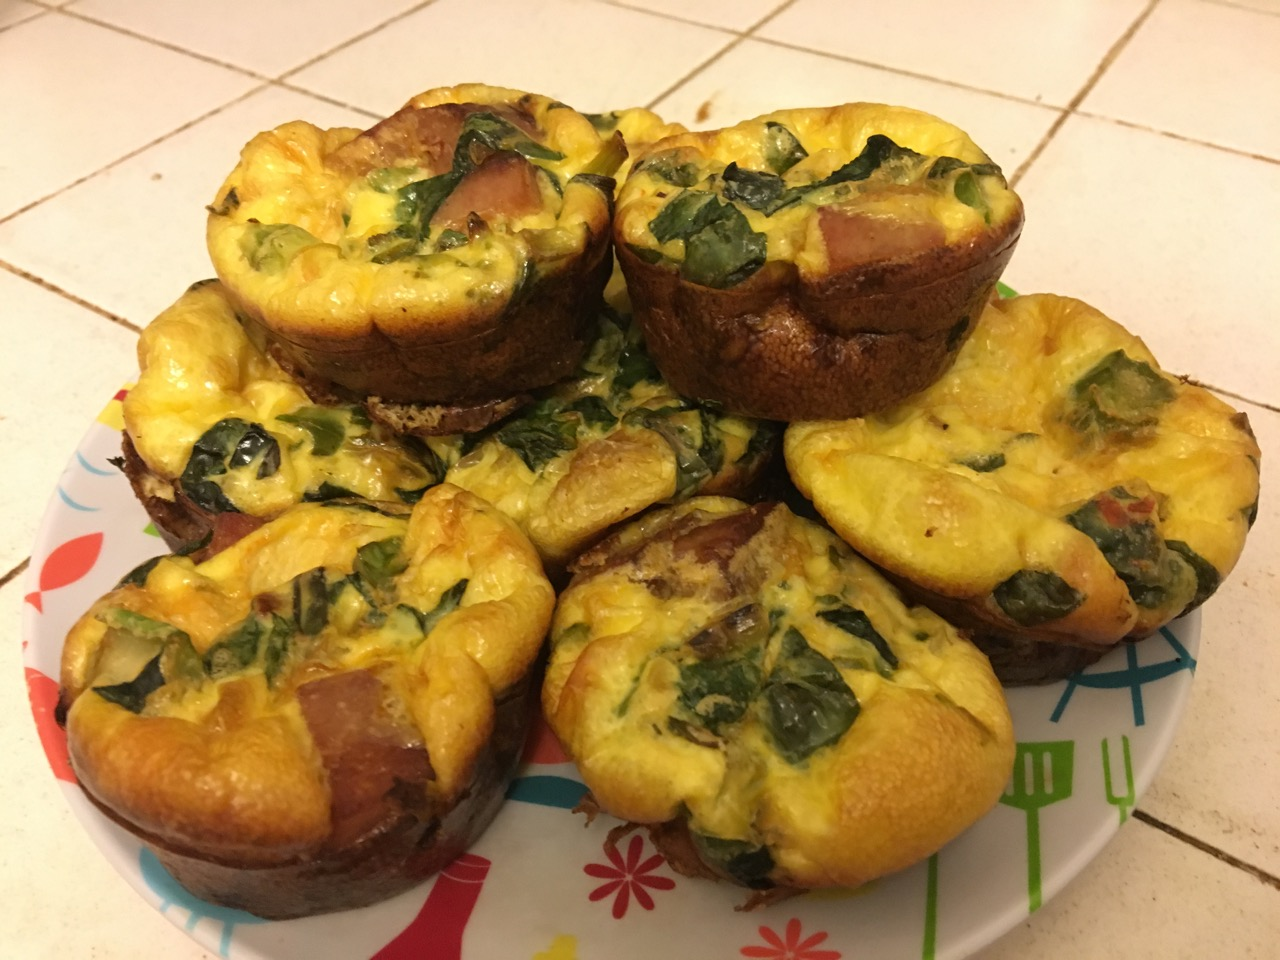 Quiche mini-bites